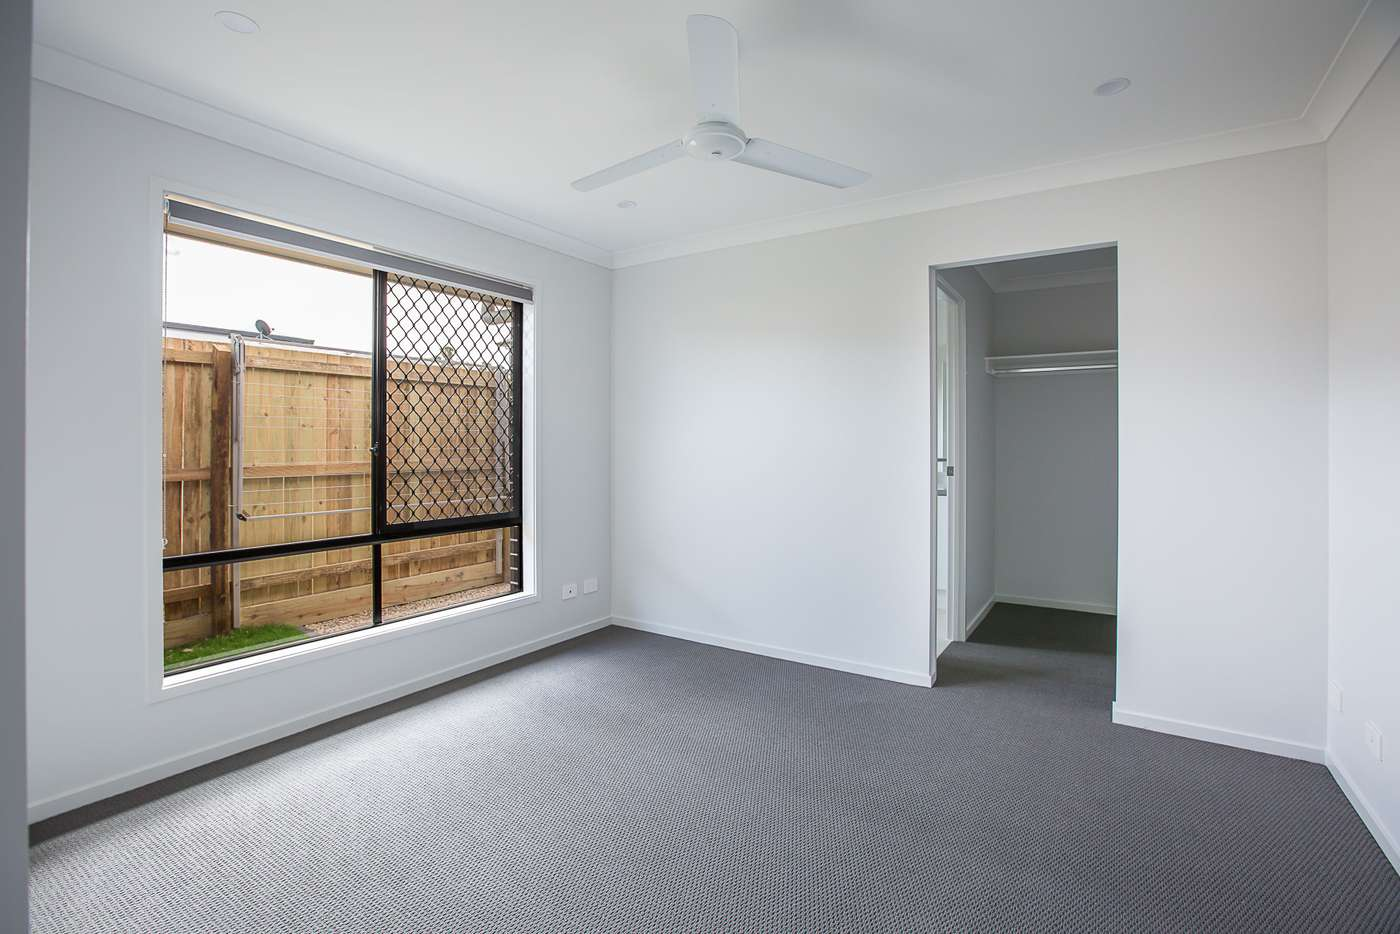 Sixth view of Homely house listing, 36 Shilin Street, Yarrabilba QLD 4207